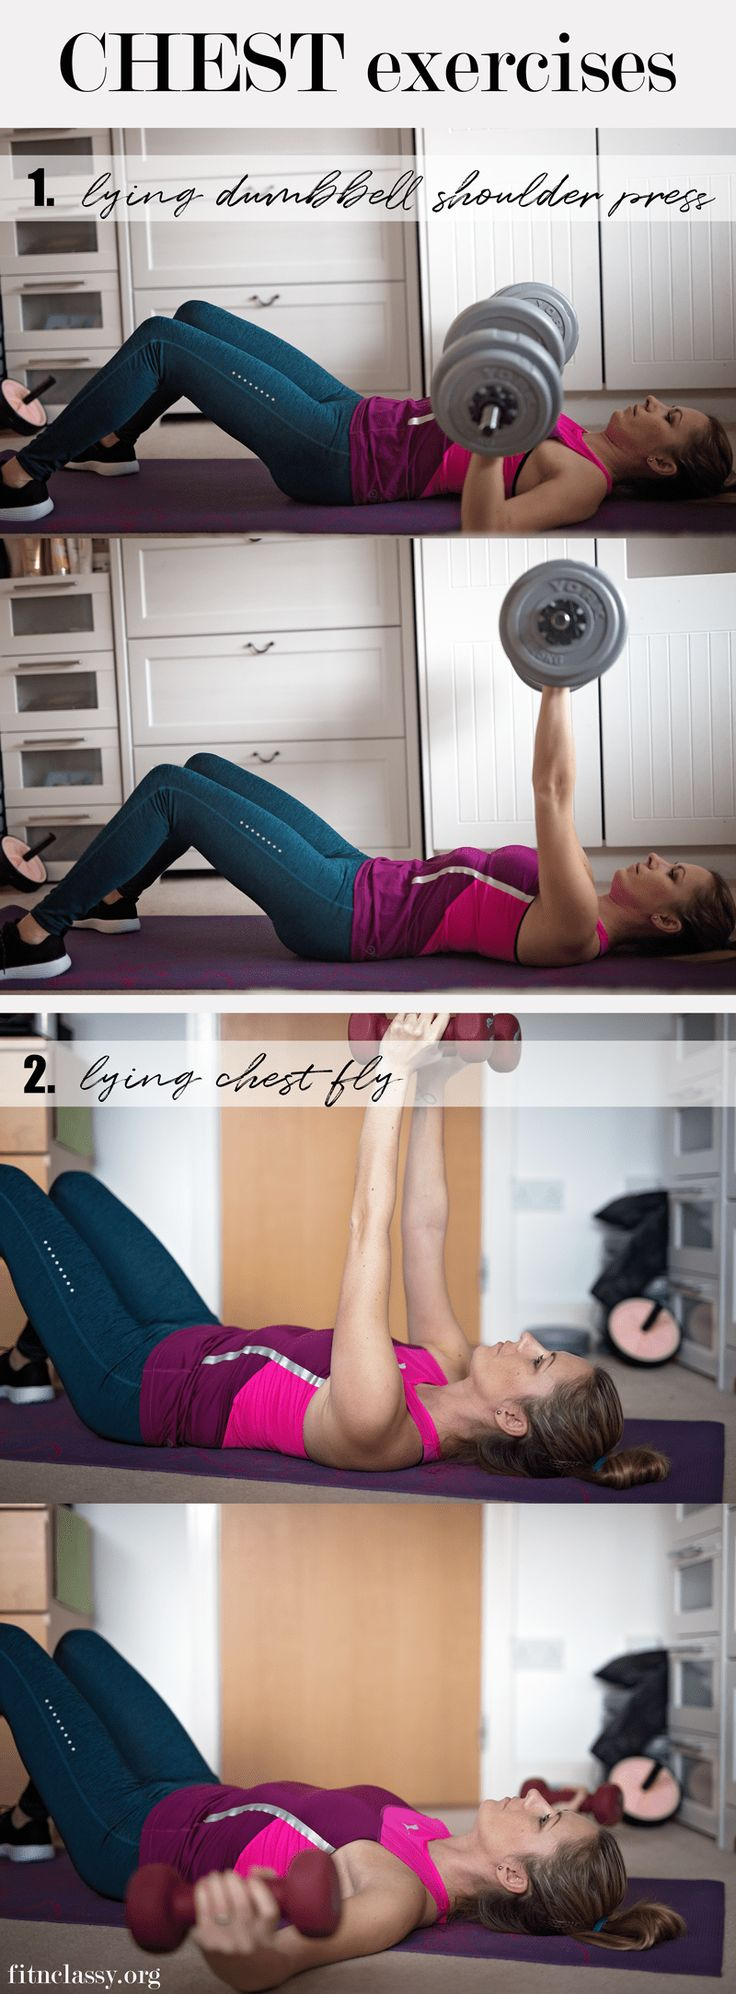 Full Upper-Body Workout with weights to target your arms, back, chest, triceps and biceps. Home workout inspiration. #fitness #workout